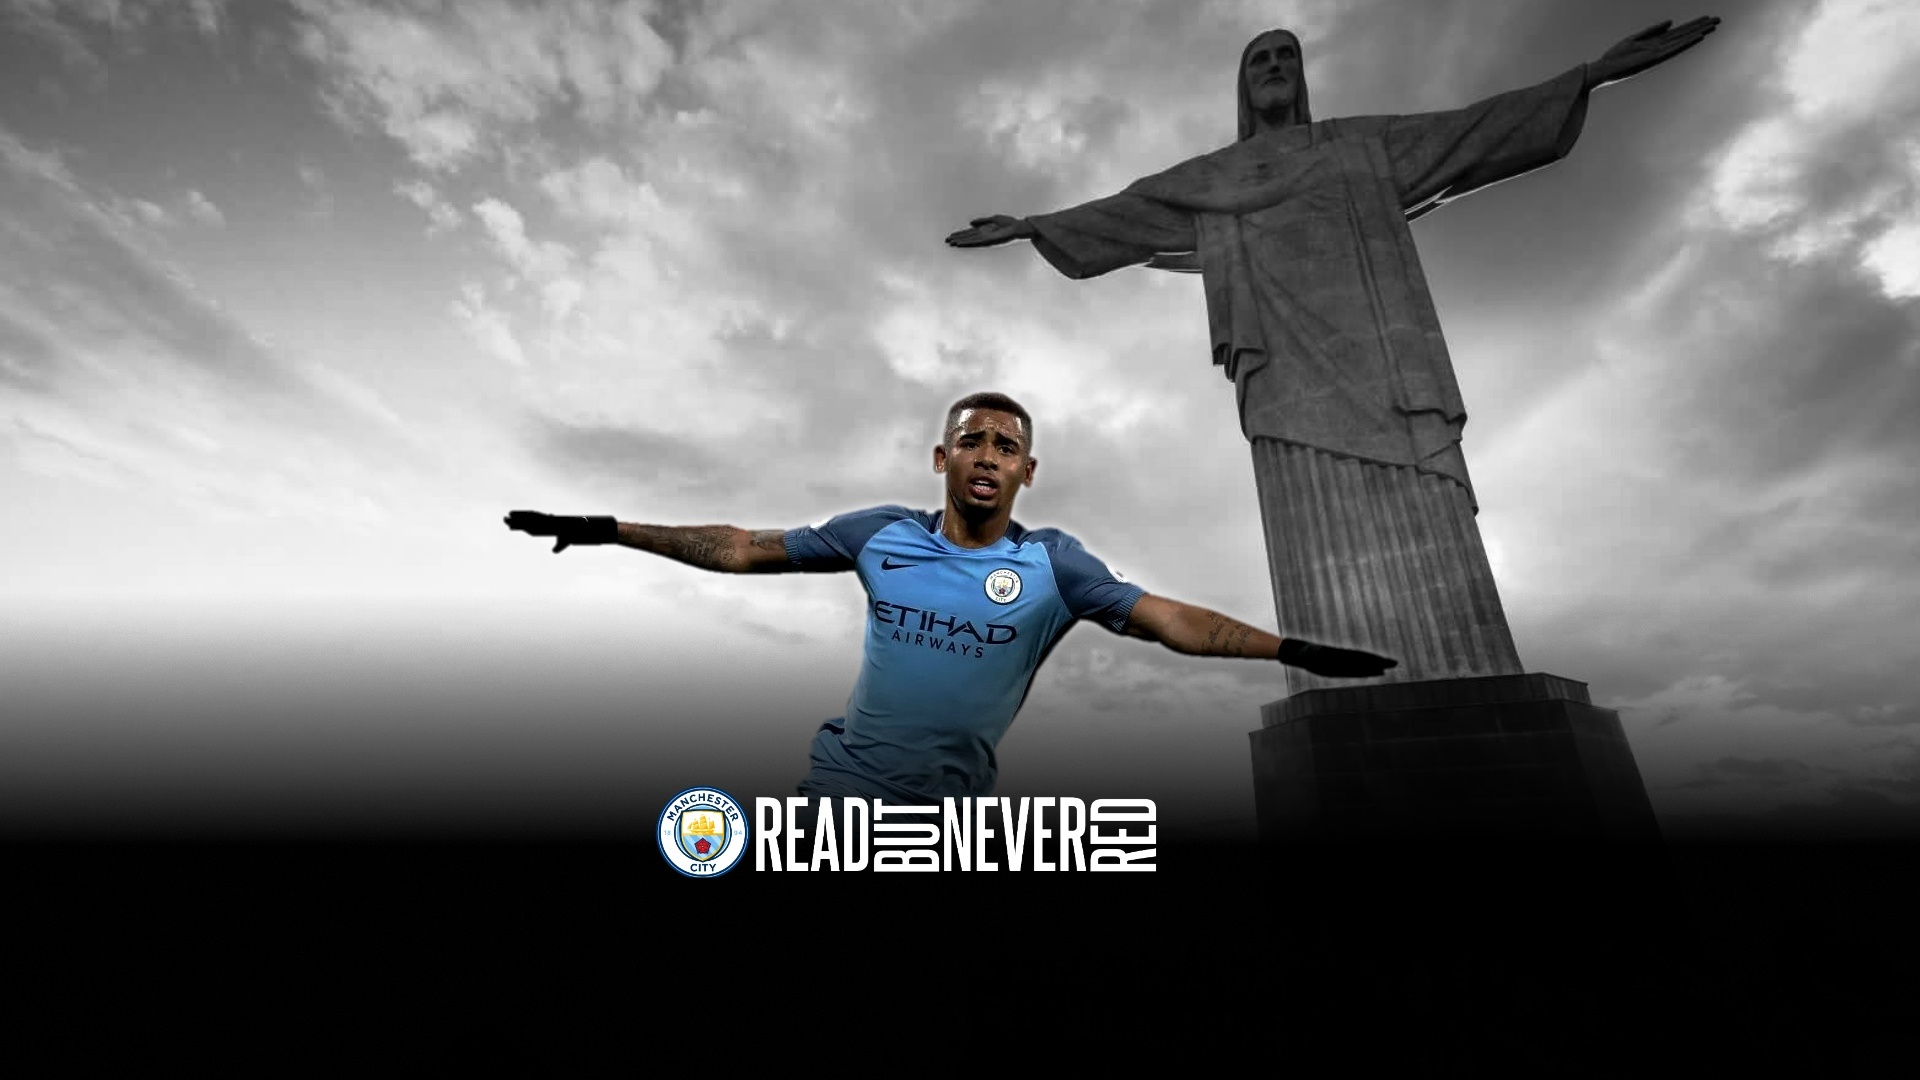 Jesus the Redeemer - Gabriel is the face of City's future but his goals could help land silverware in the present.